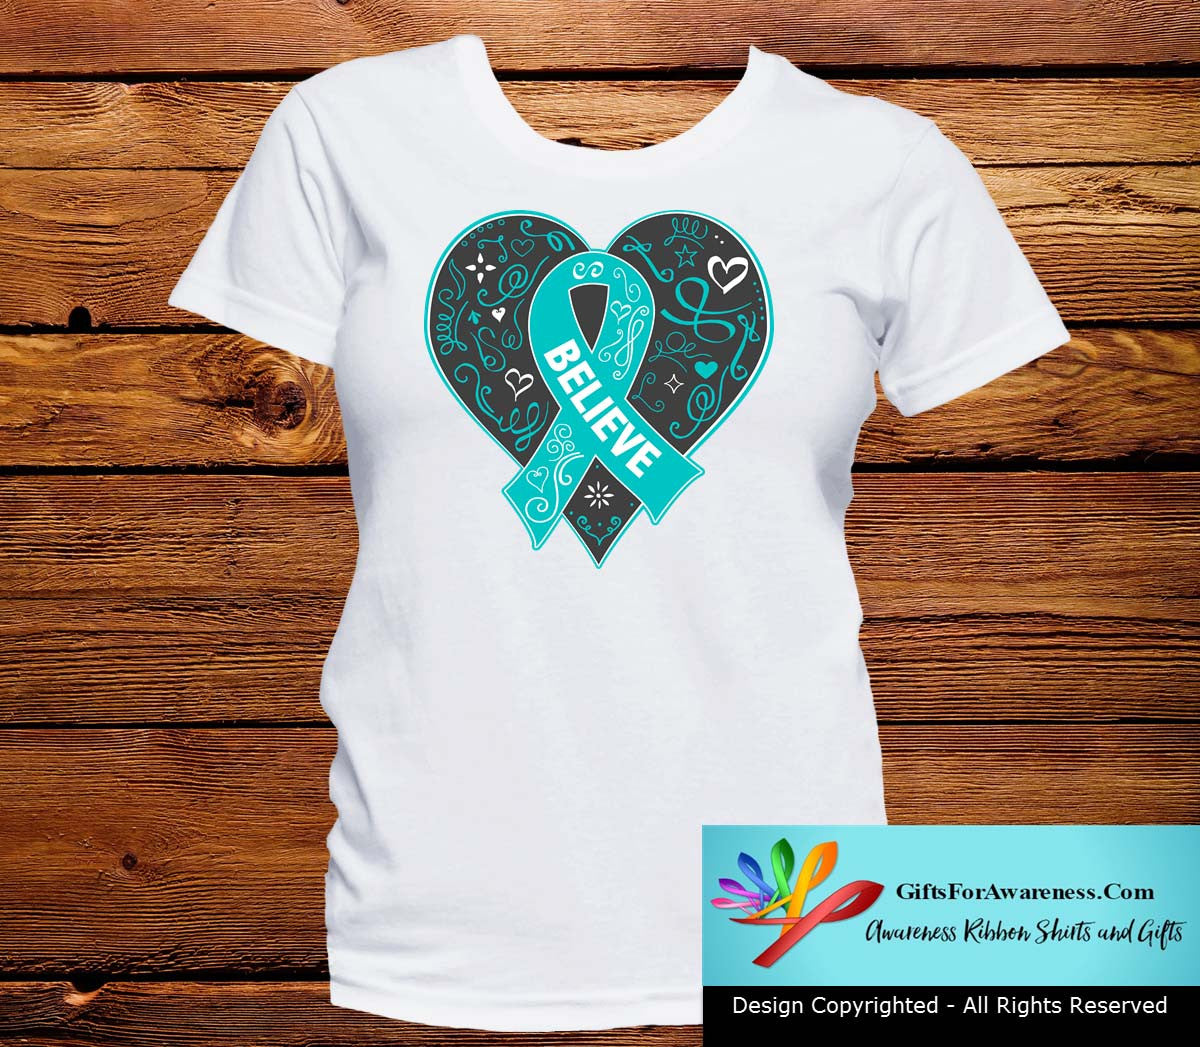 Gynecologic Cancer Believe Heart Ribbon Shirts - GiftsForAwareness